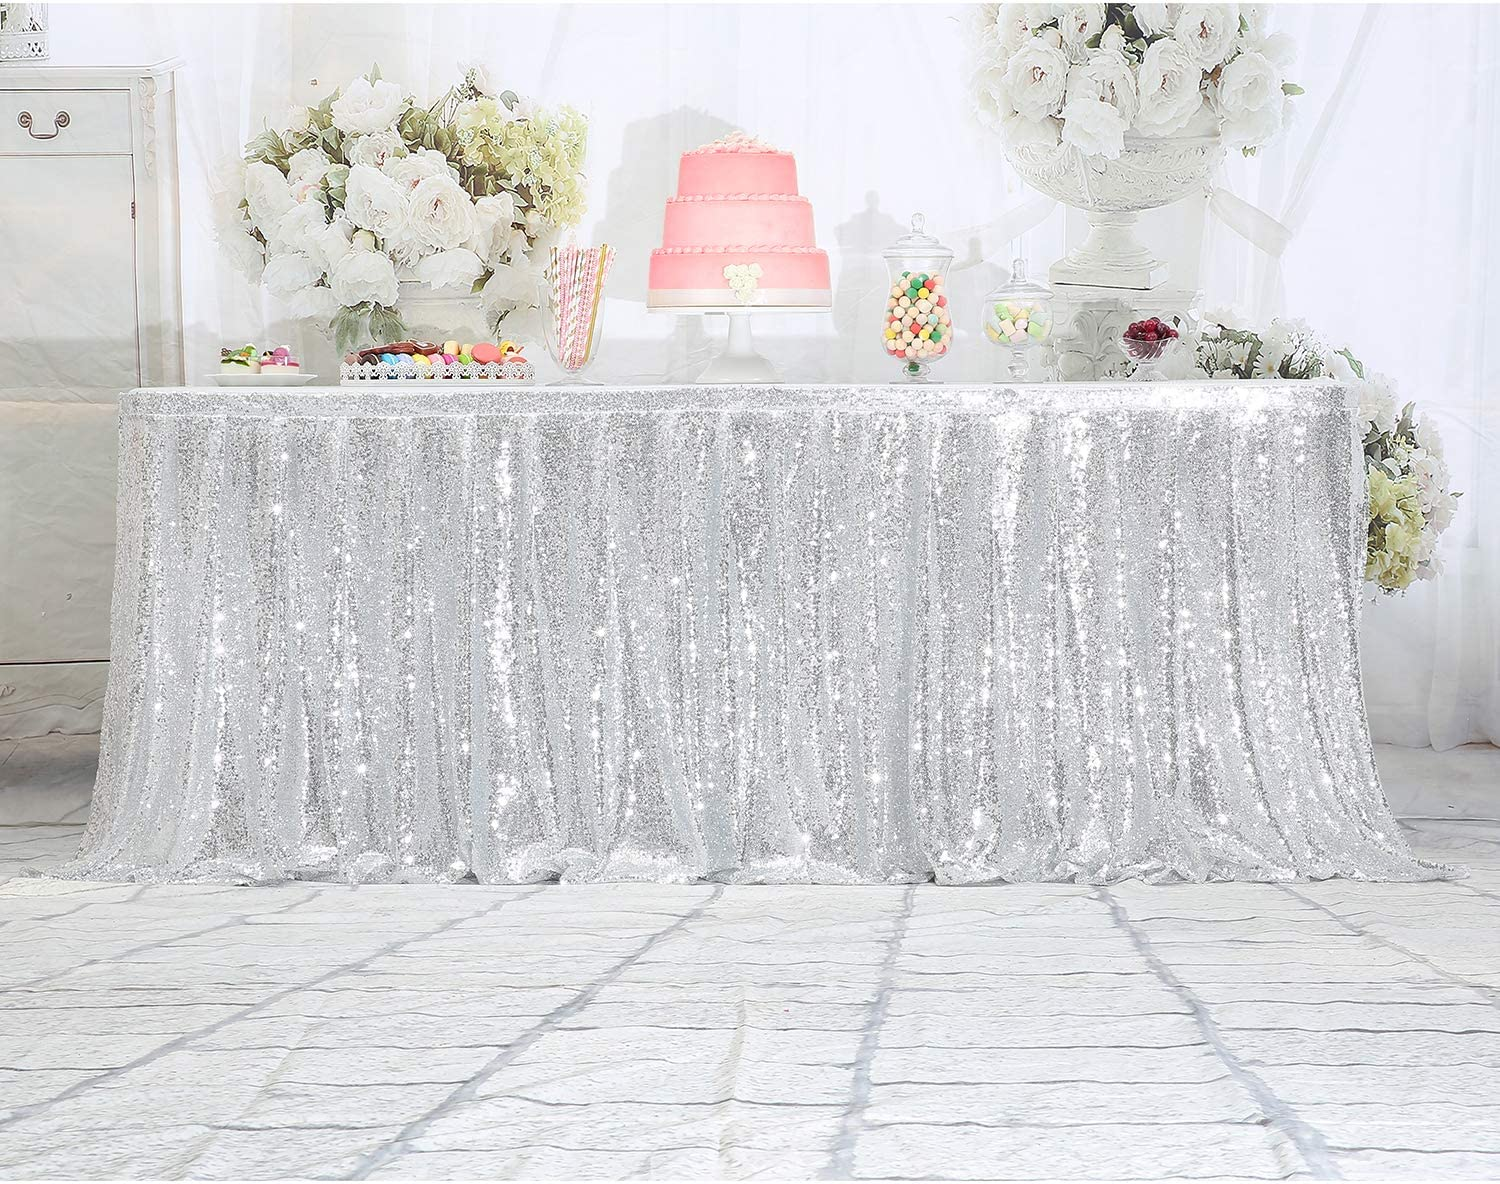 * H 30in) ft Eternal Beauty Sequin Table Skirt Rectangle Round Table Cover for Party Wedding Baby Shower Decoration(Amber Gold,L 6